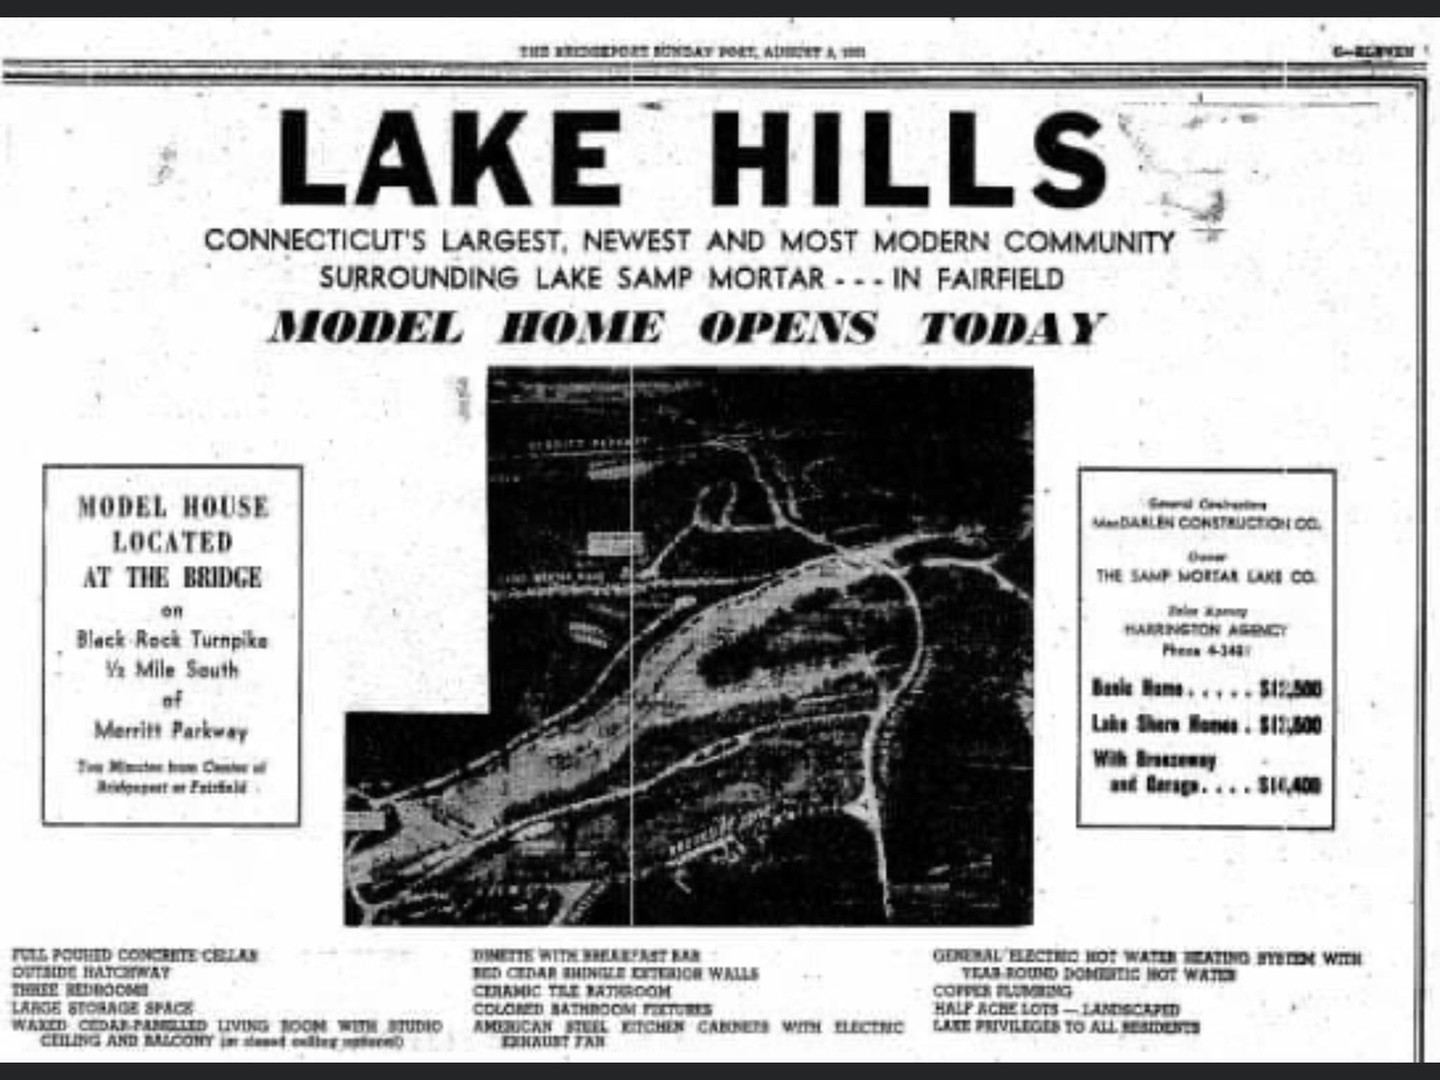 LHA Homes For Sale